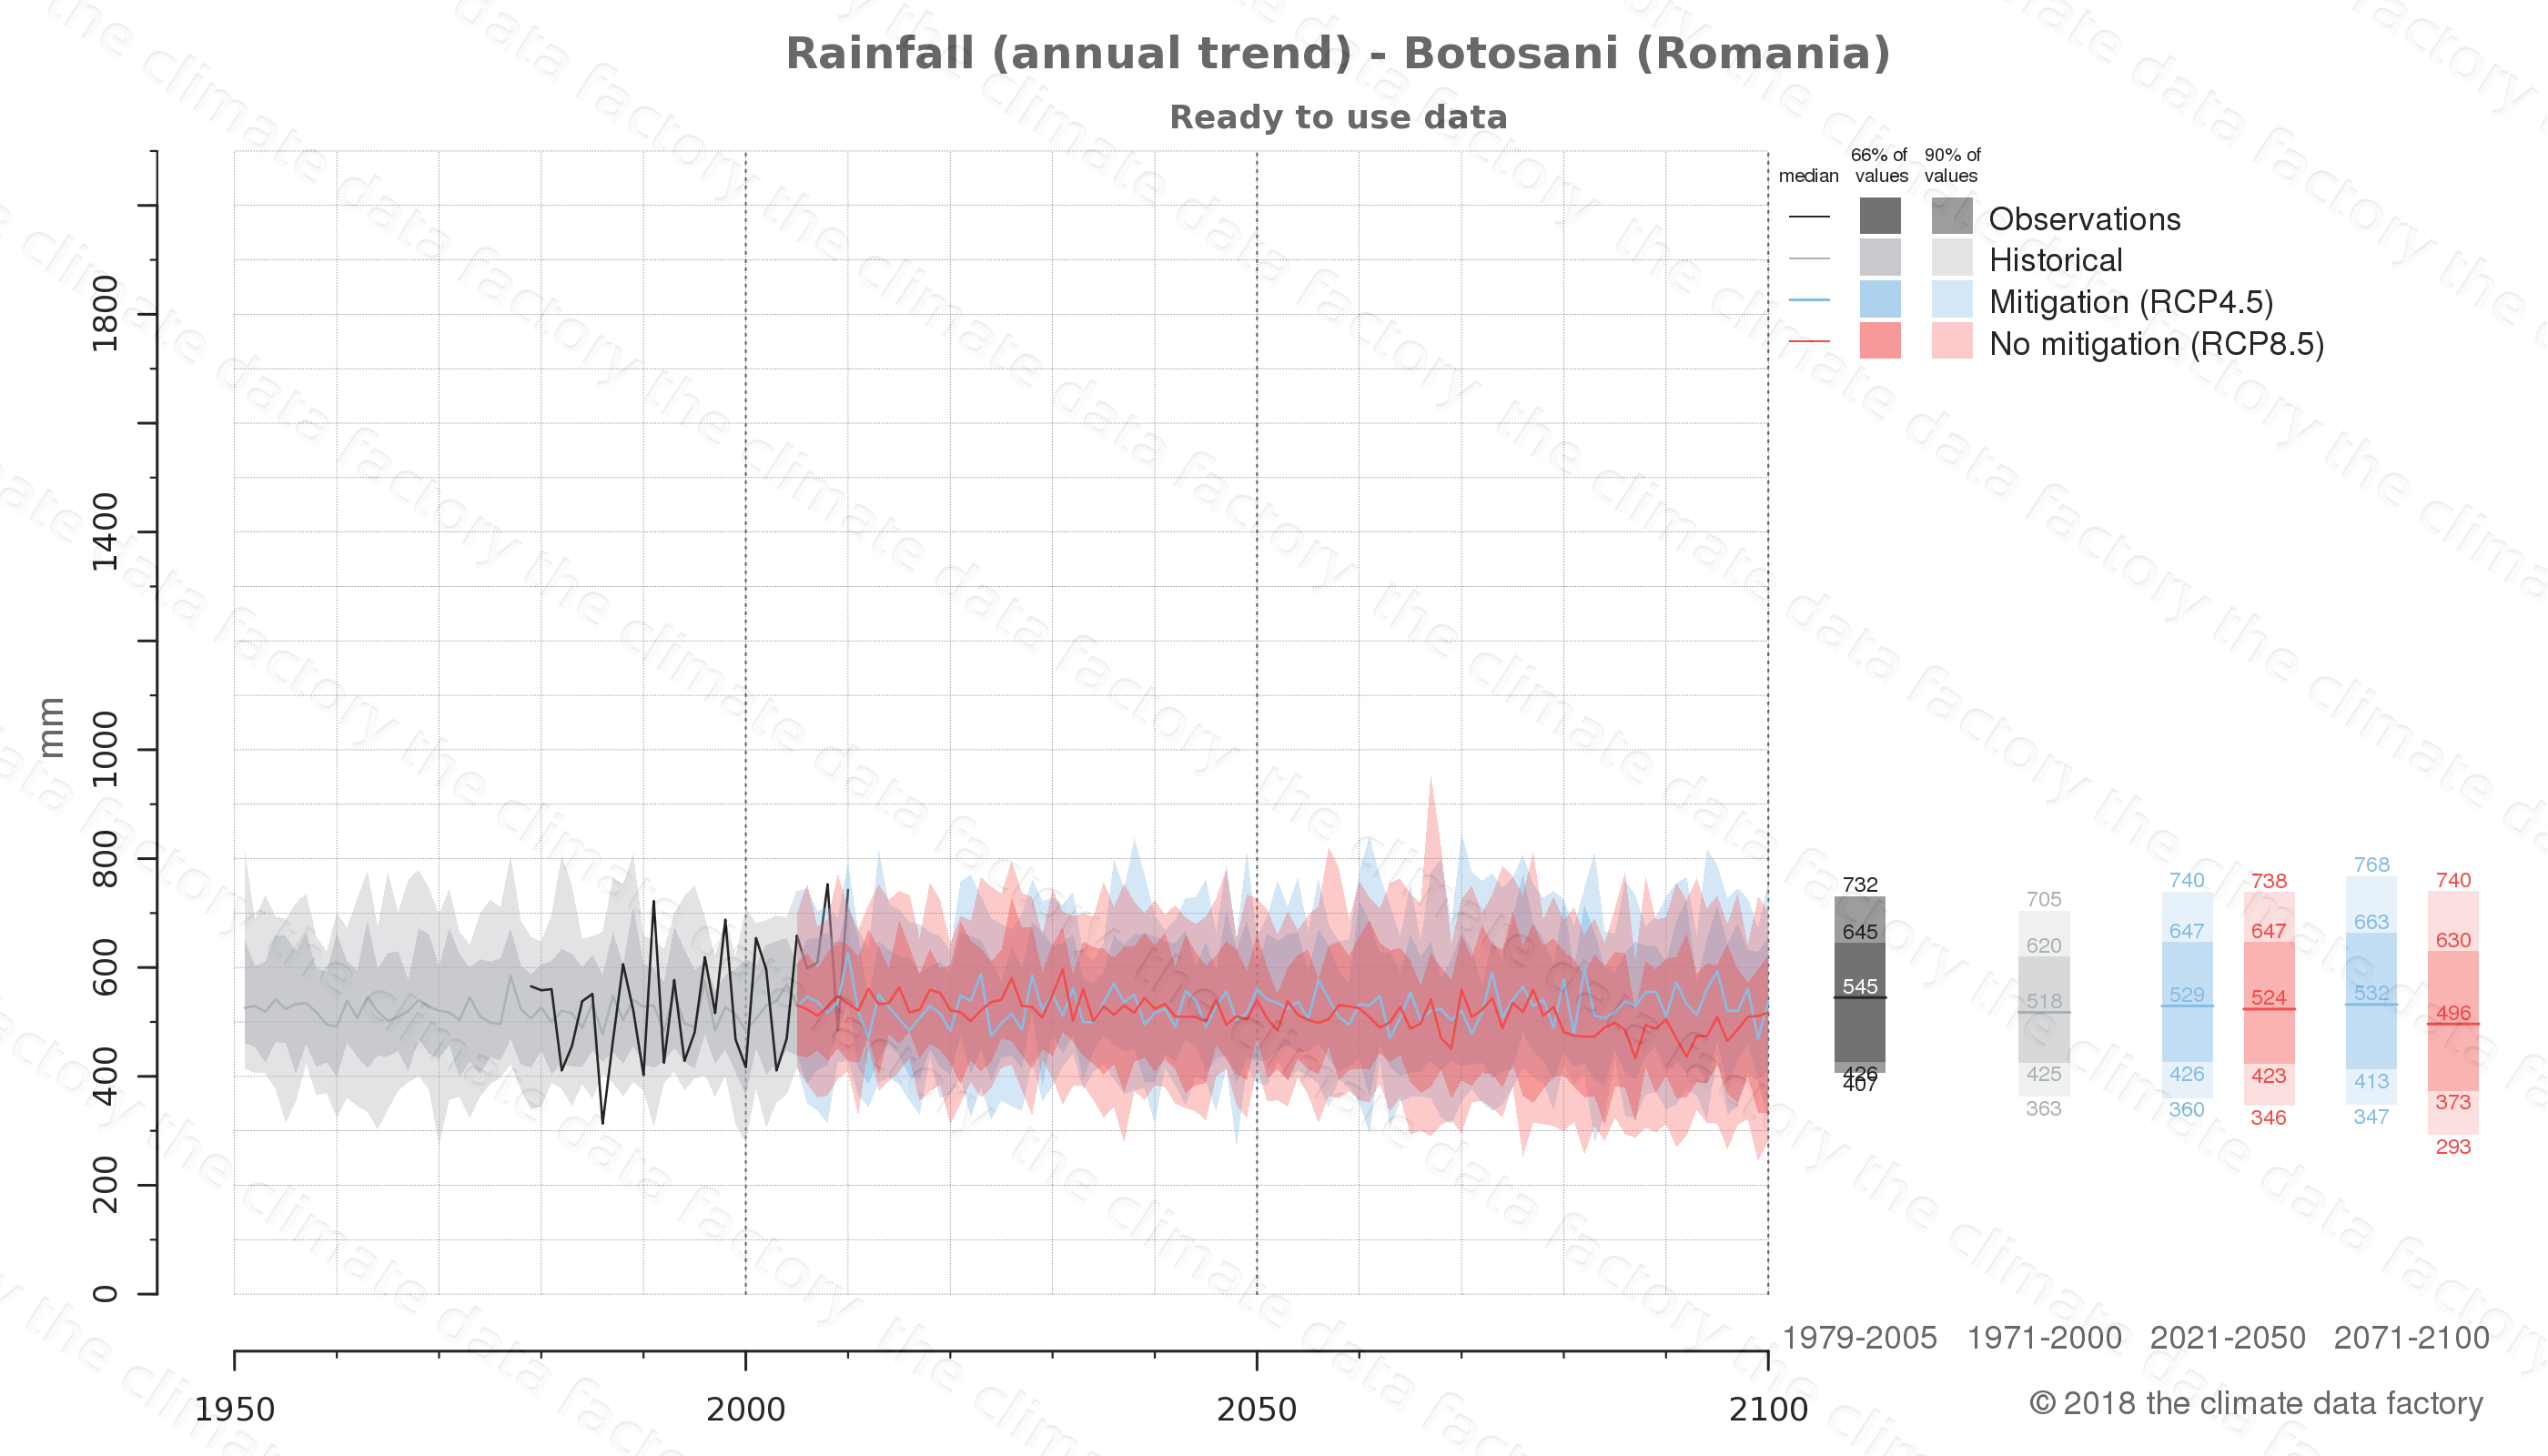 climate change data policy adaptation climate graph city data rainfall botosani romania